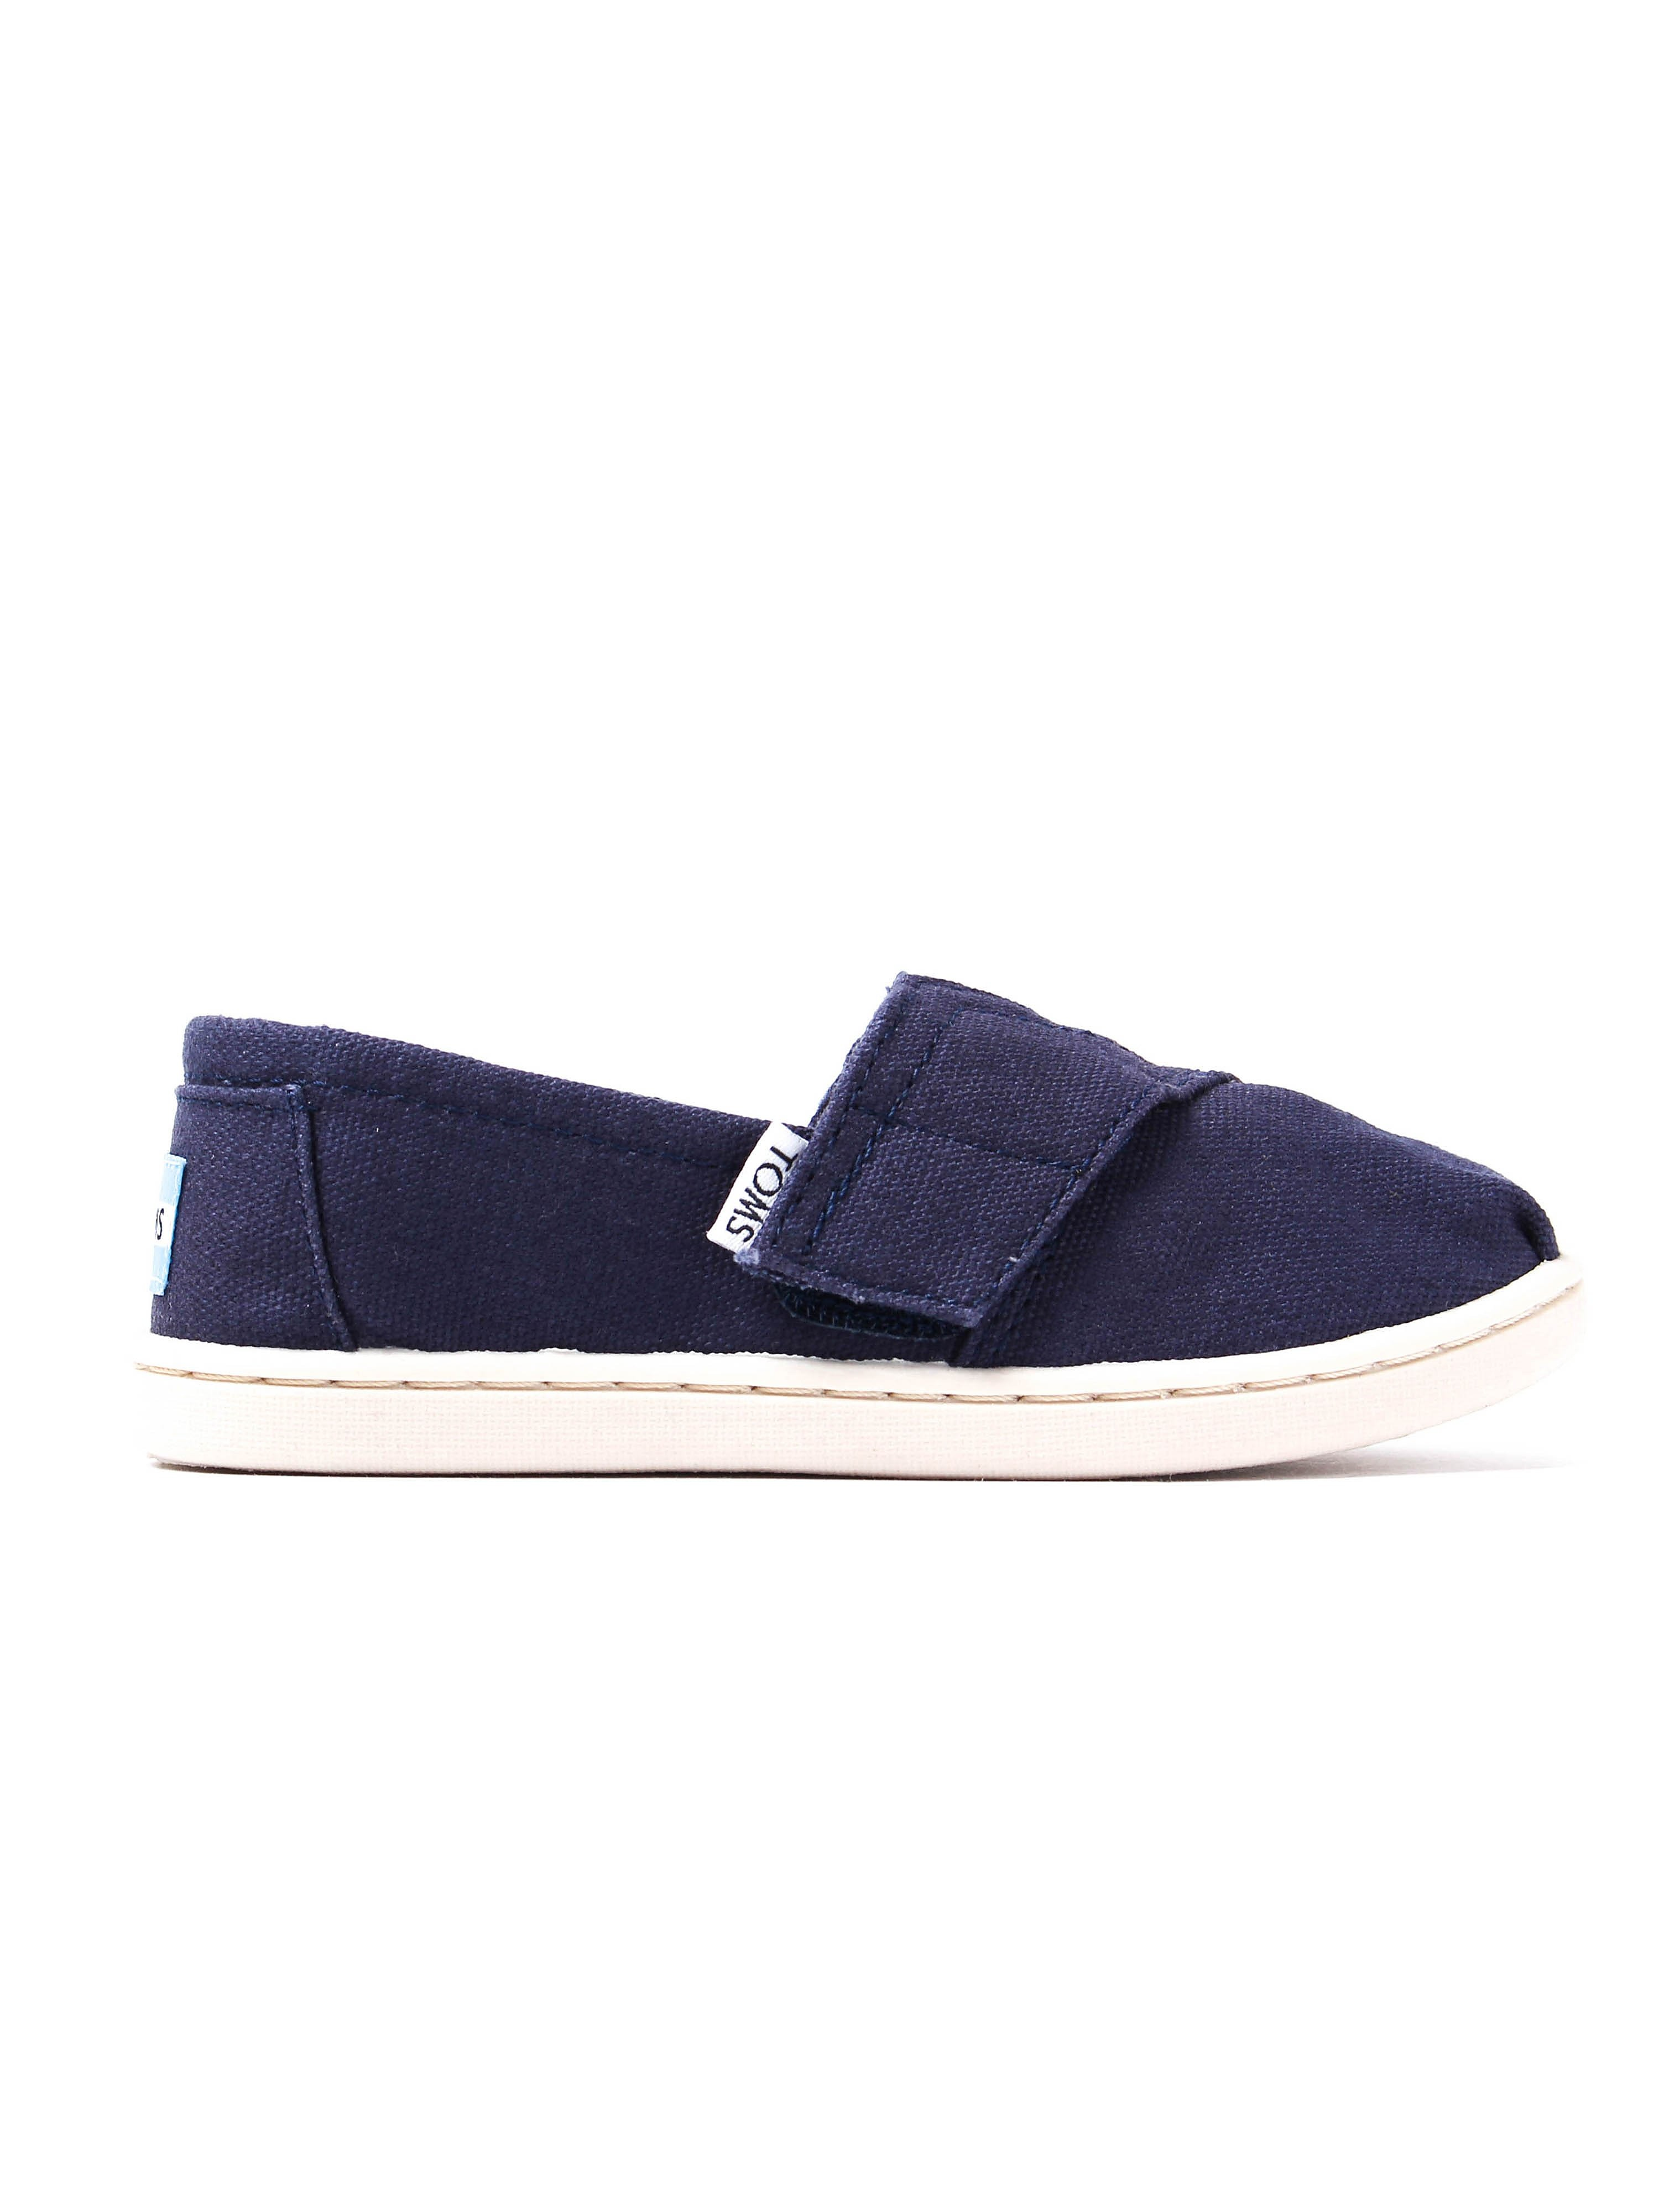 Toms Kids Classic - Navy Canvas